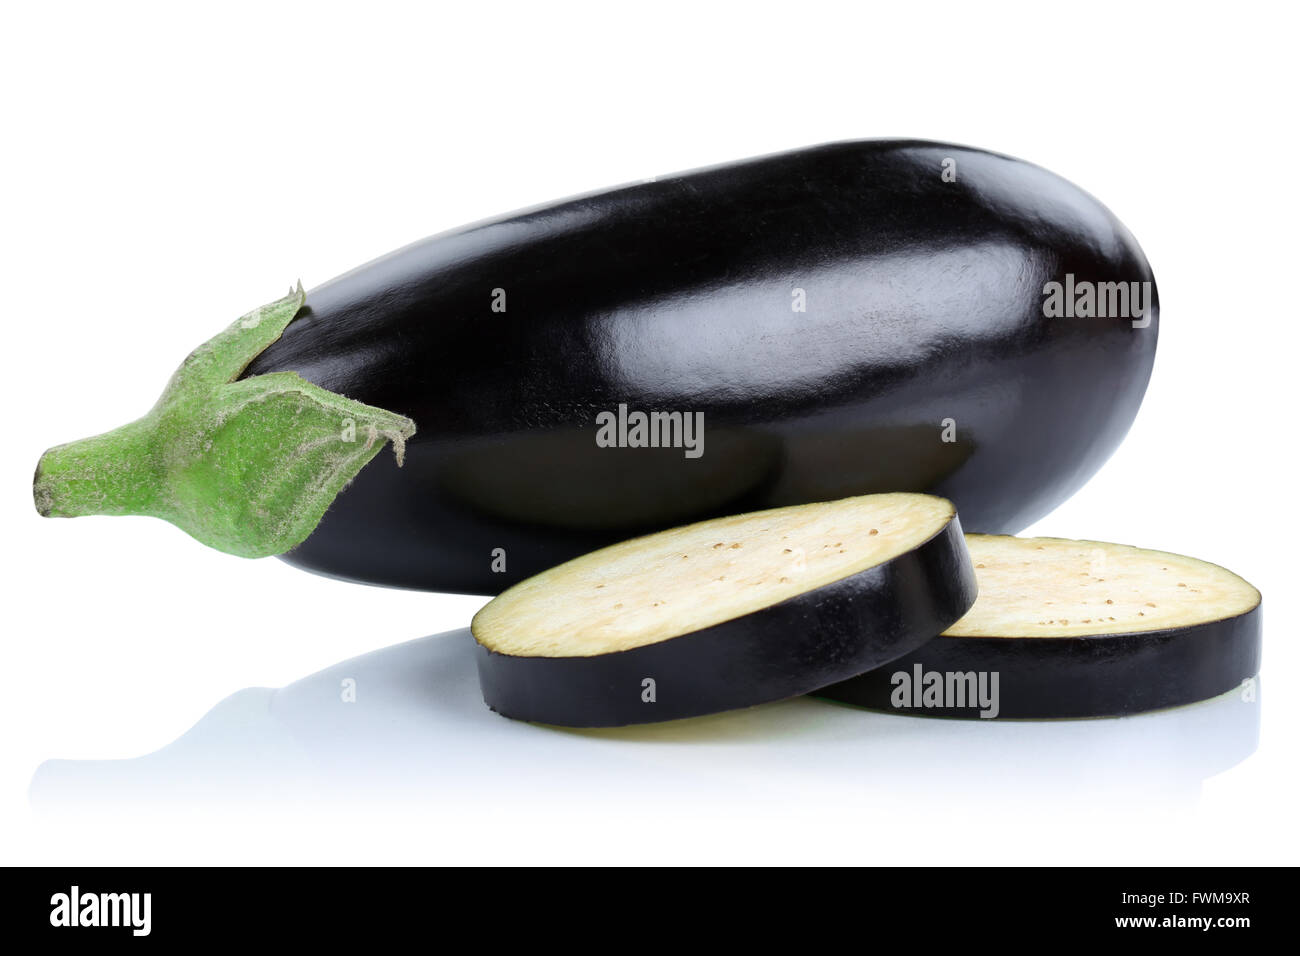 Eggplant aubergine slice slices vegetable isolated on a white background Stock Photo